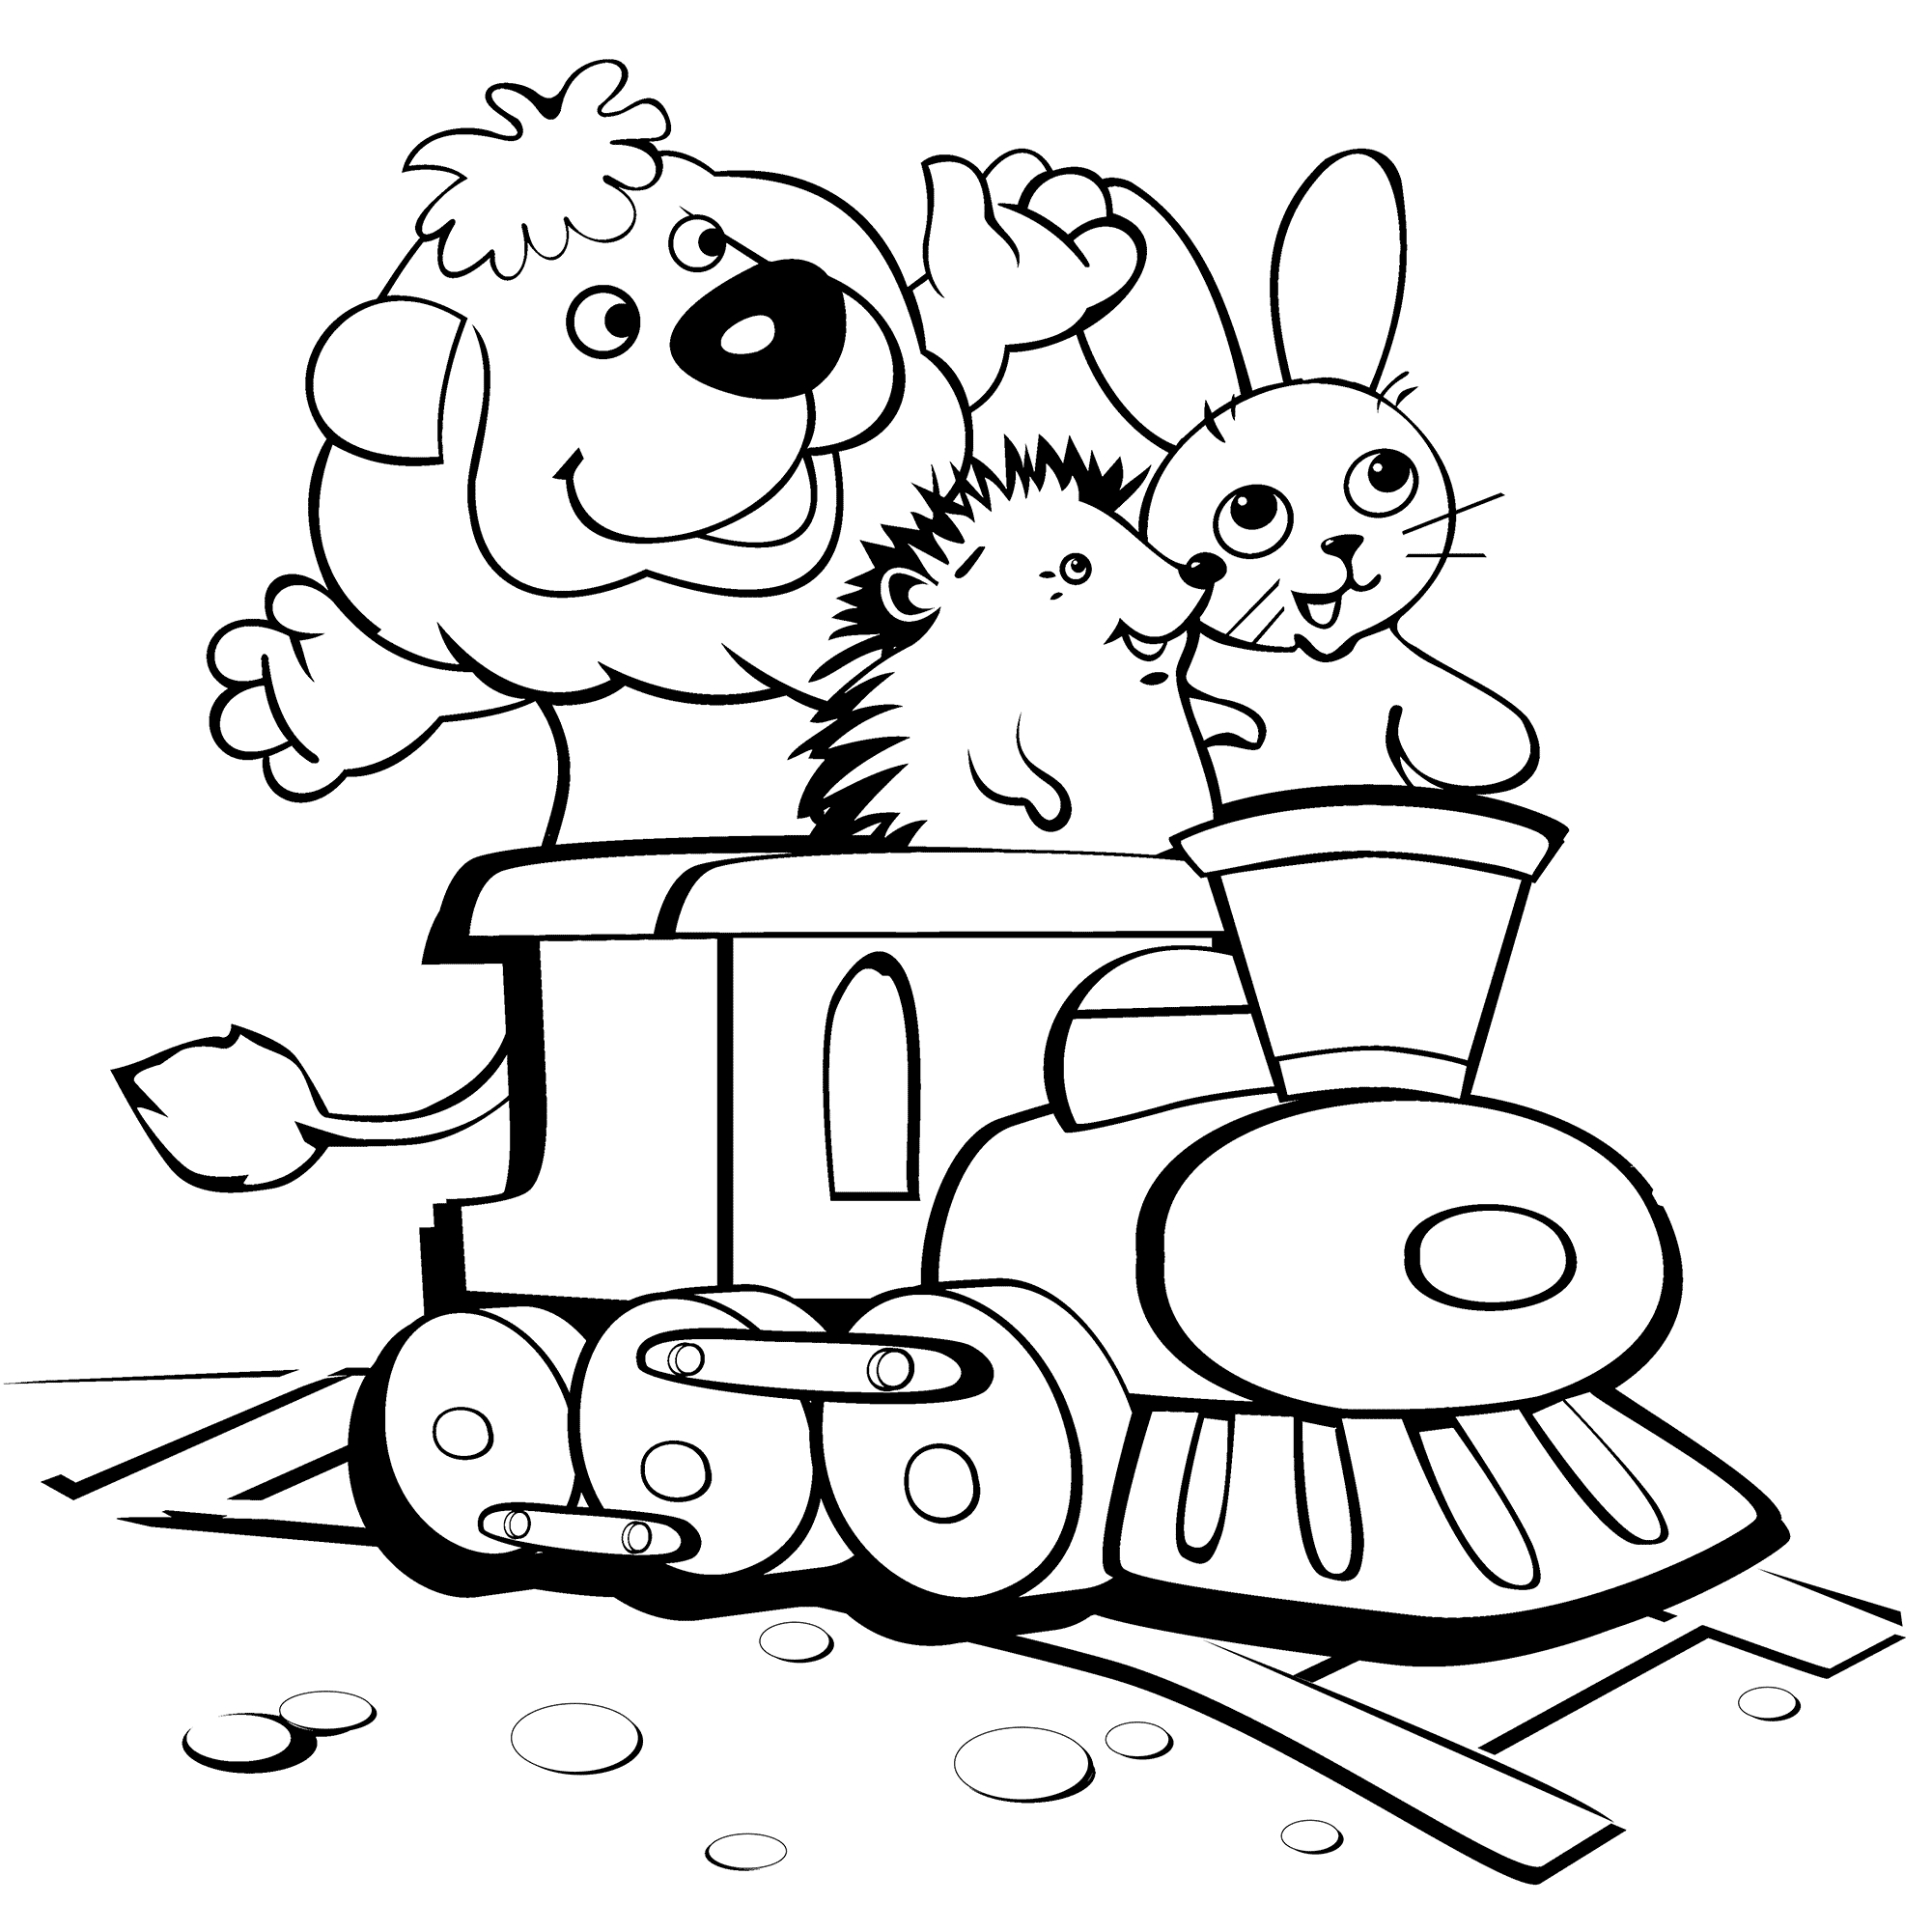 turkey coloring pages free - drawing pages for kids